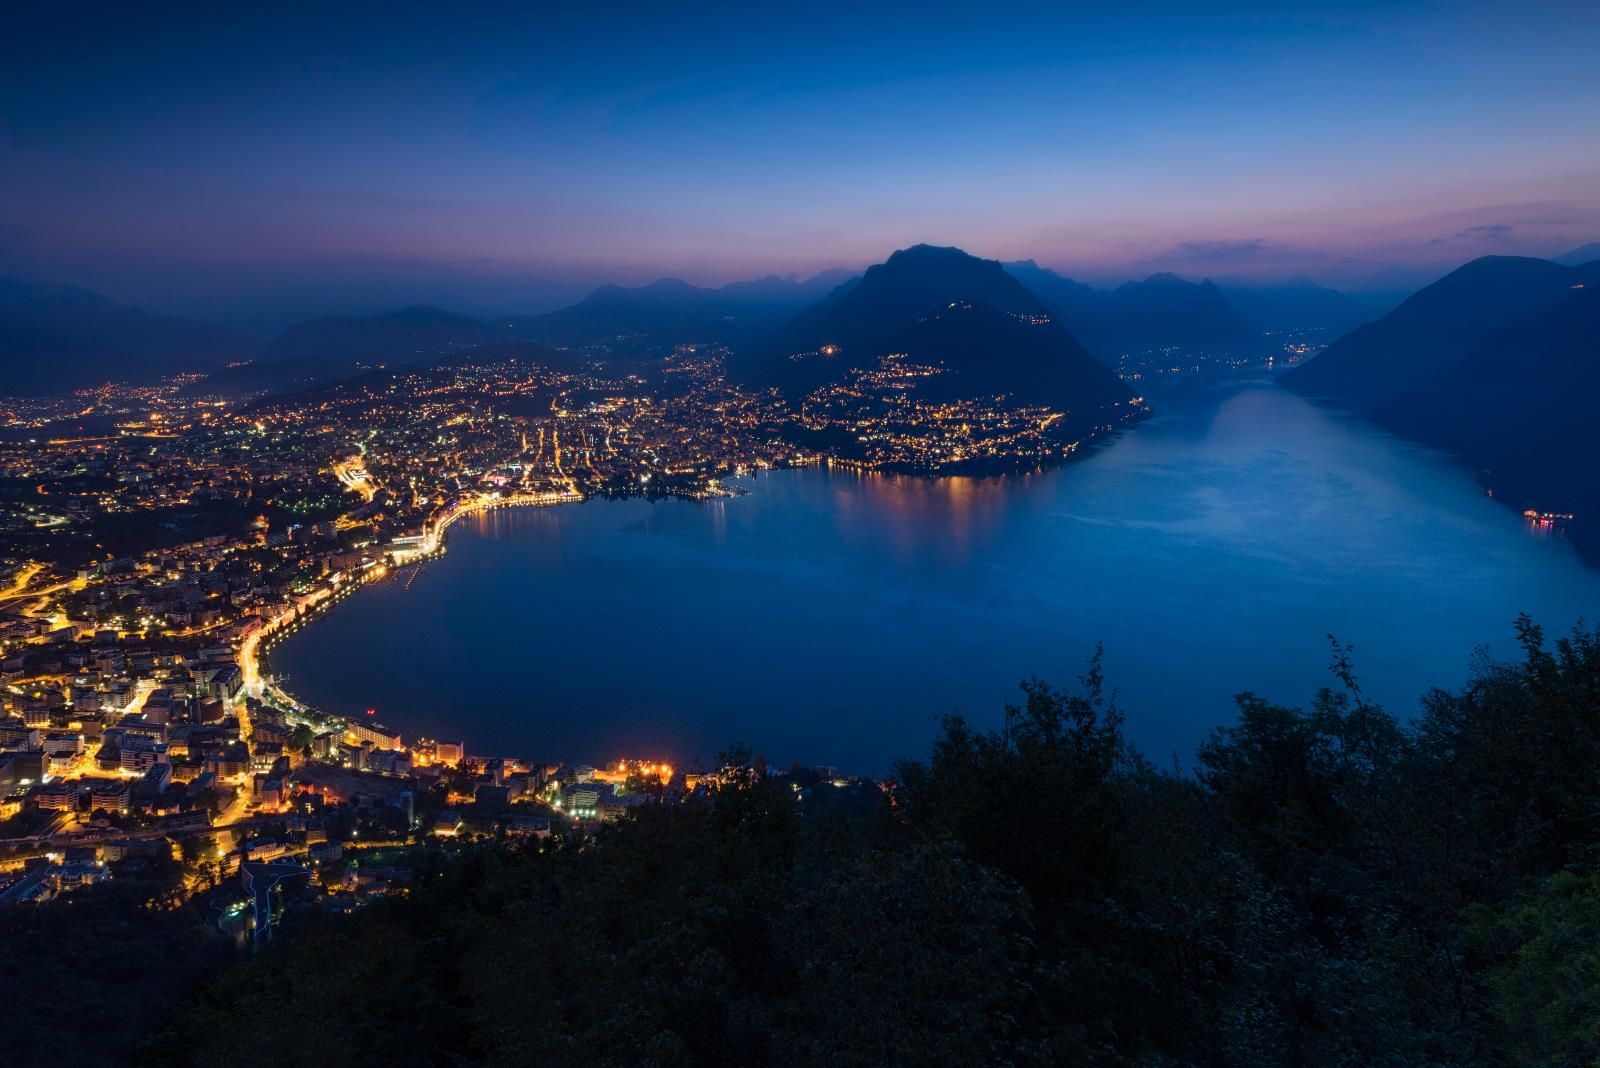 City center and lakefront, View of Lugano from Monte San Salvatore by night